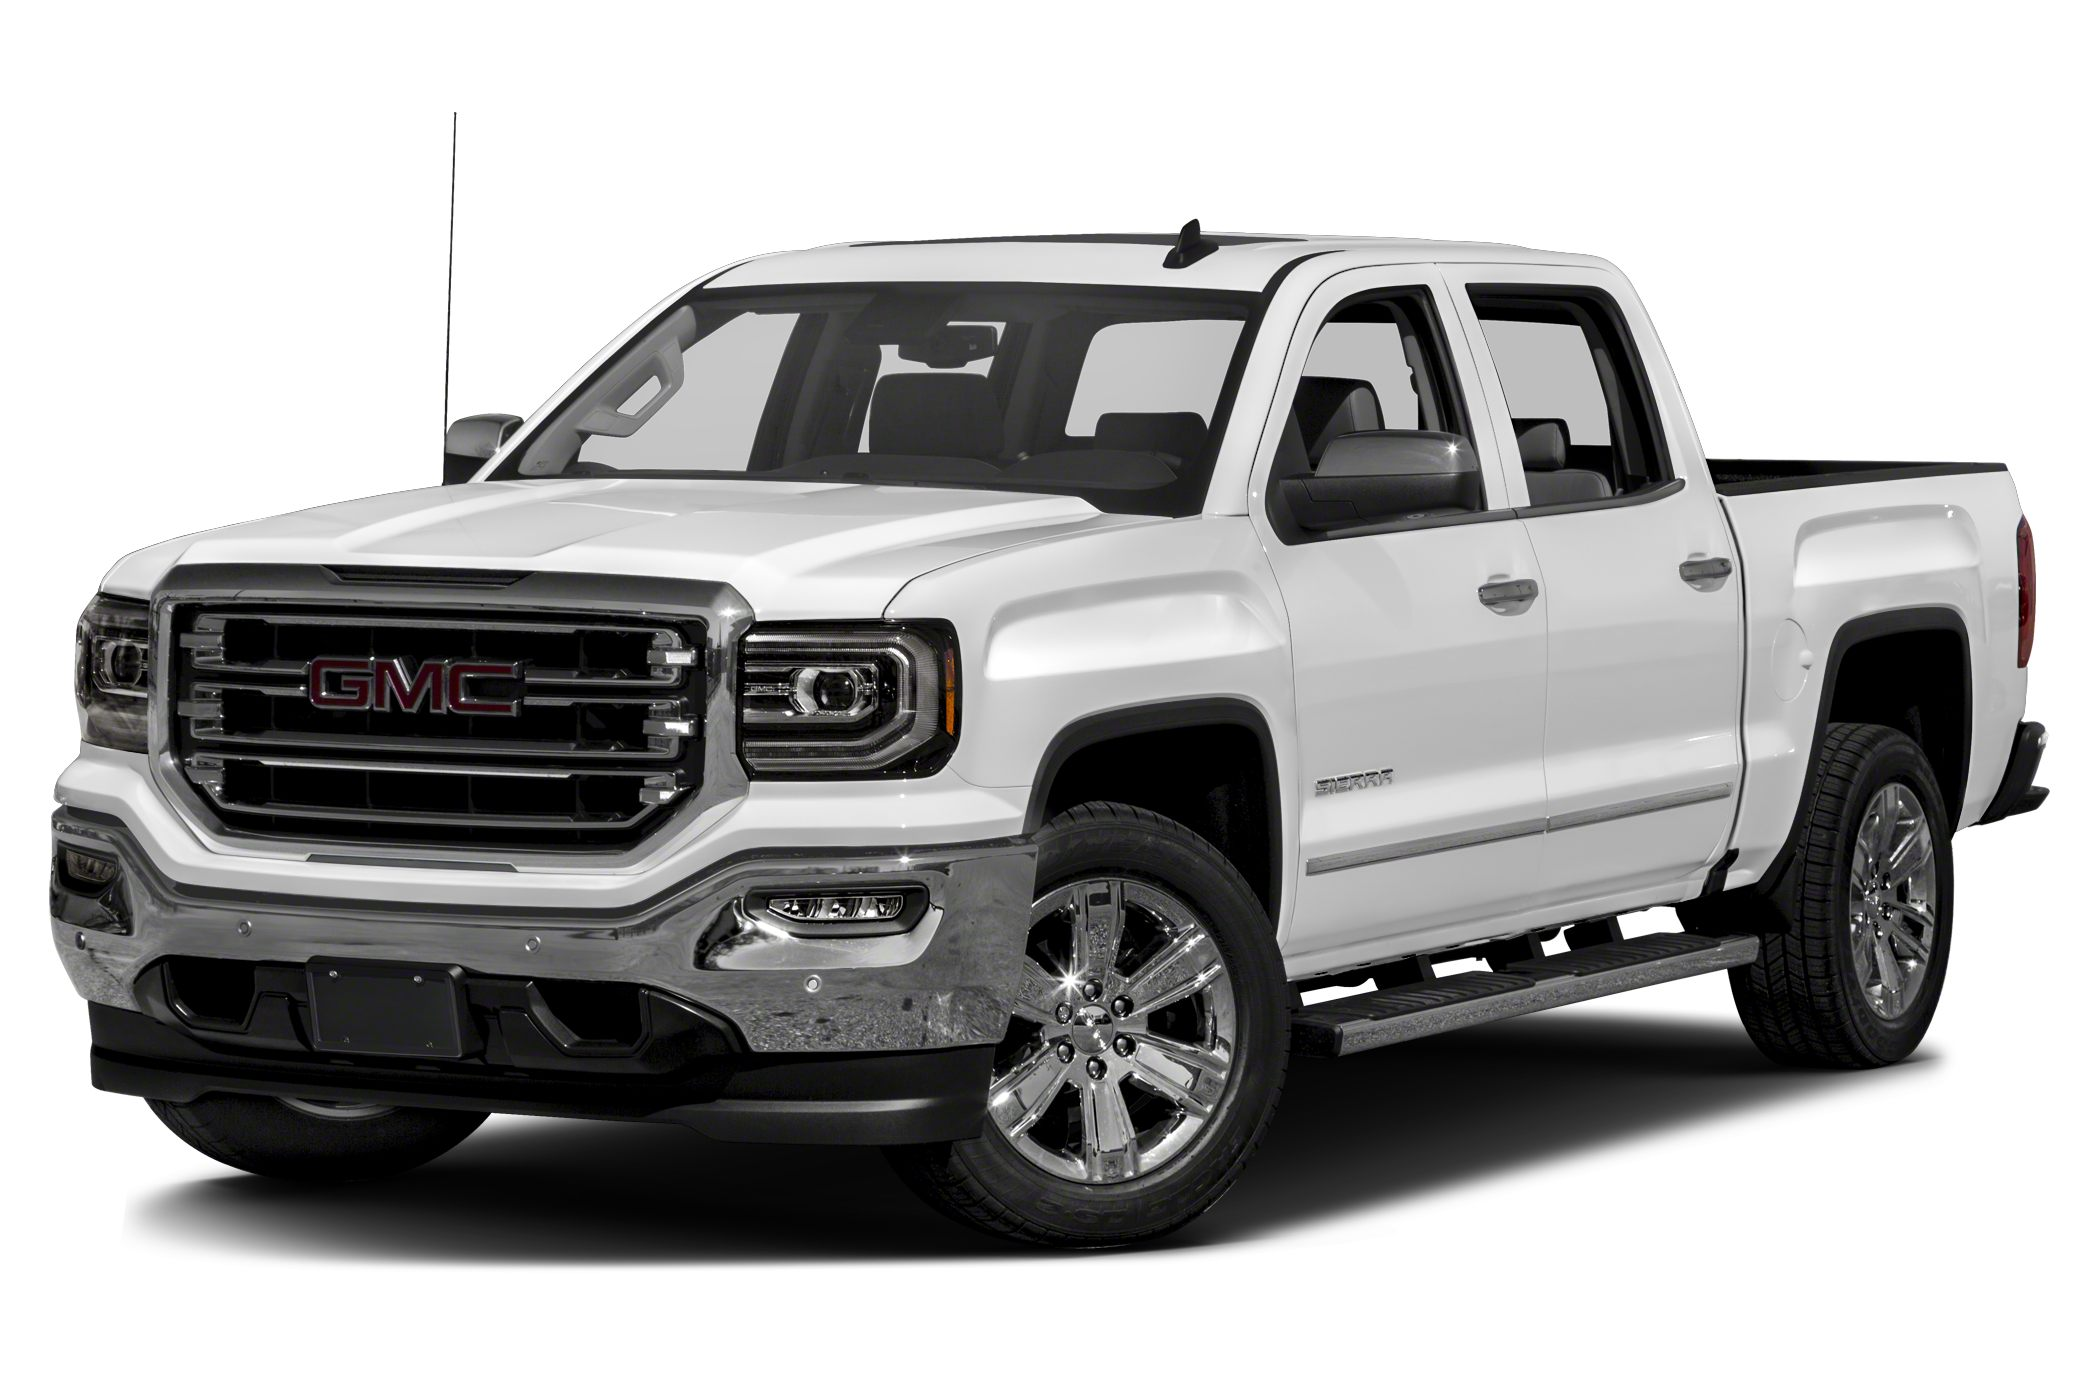 2017 GMC Sierra 1500 SLT New Arrival -Leather seats -Bluetooth -Satellite Radio 4-Wheel Drive -Au